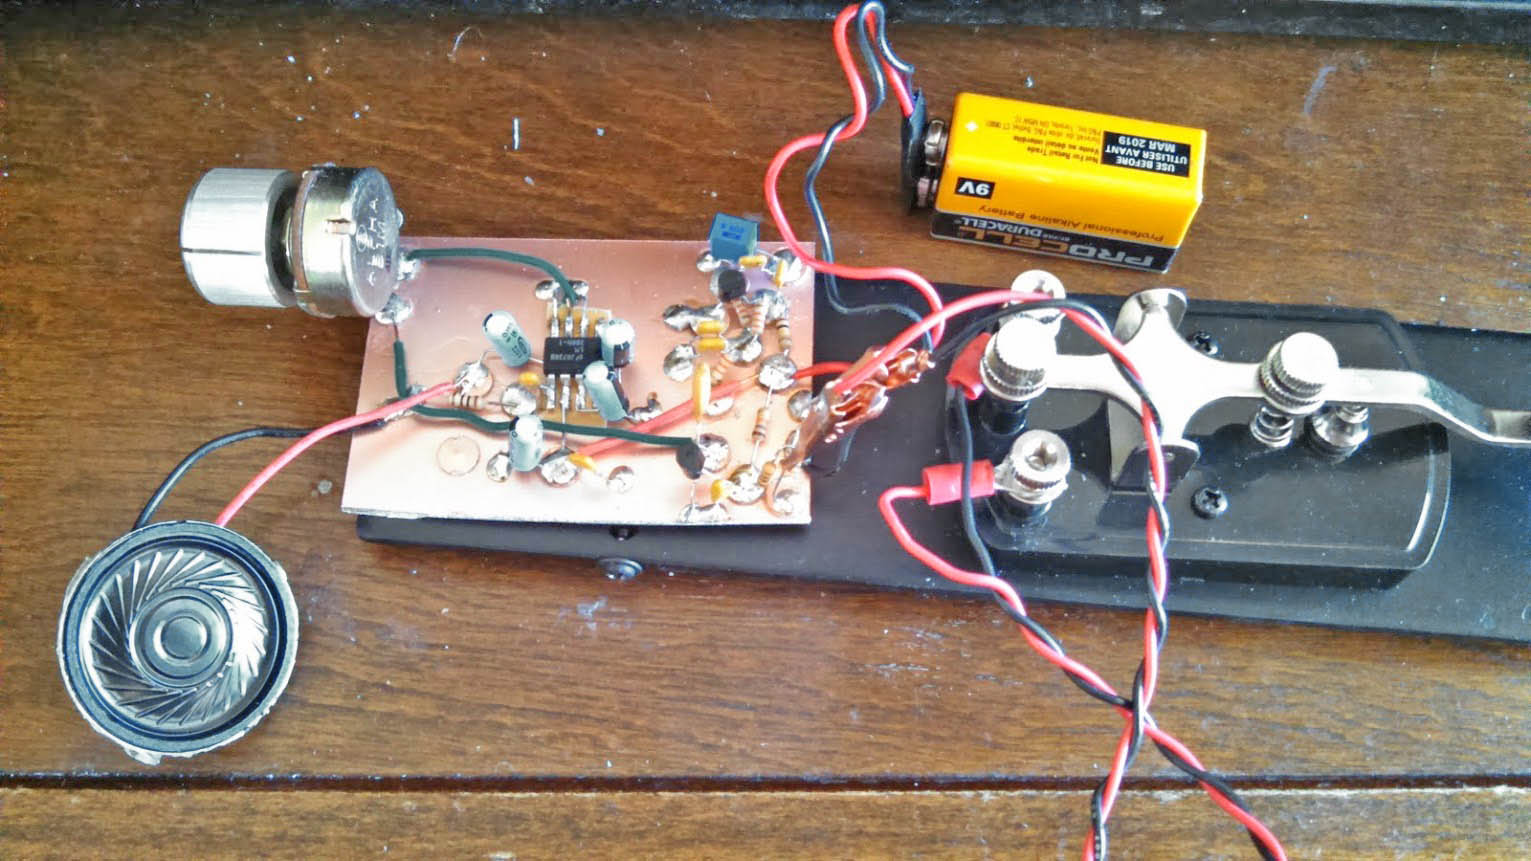 Twin T Morse Code Practice Oscillator K4icy Http Startingelectronicscom Beginners Circuits Opamposcillator Af5whs Cpo Build